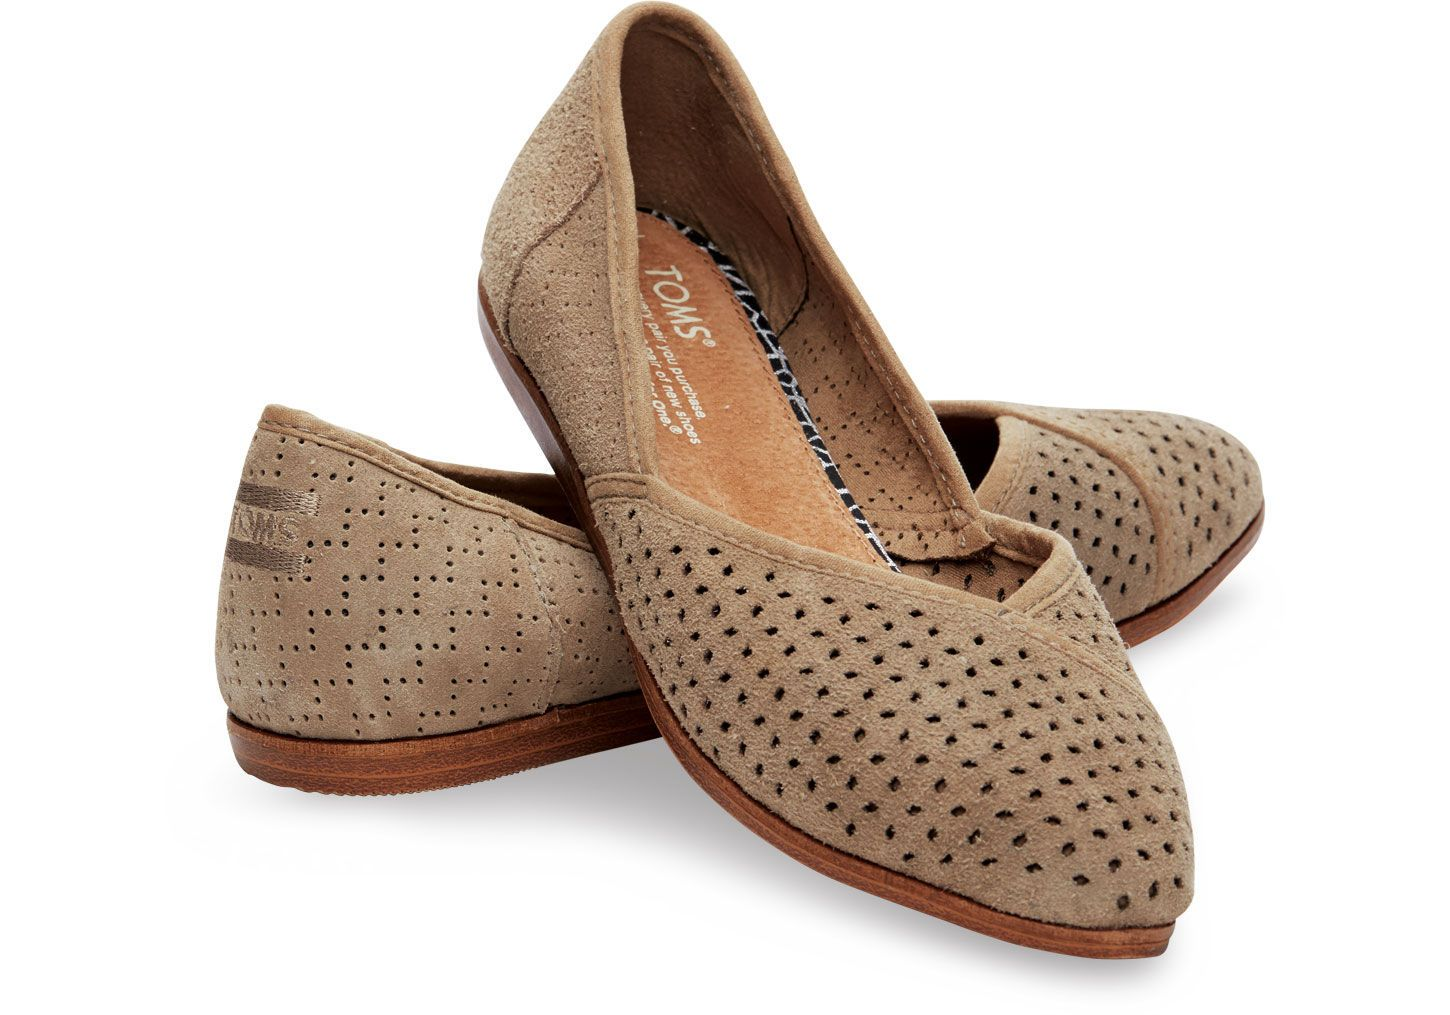 e099128a8a9b Lyst - Toms Taupe Suede Perforated Women s Jutti Flats in Brown ...